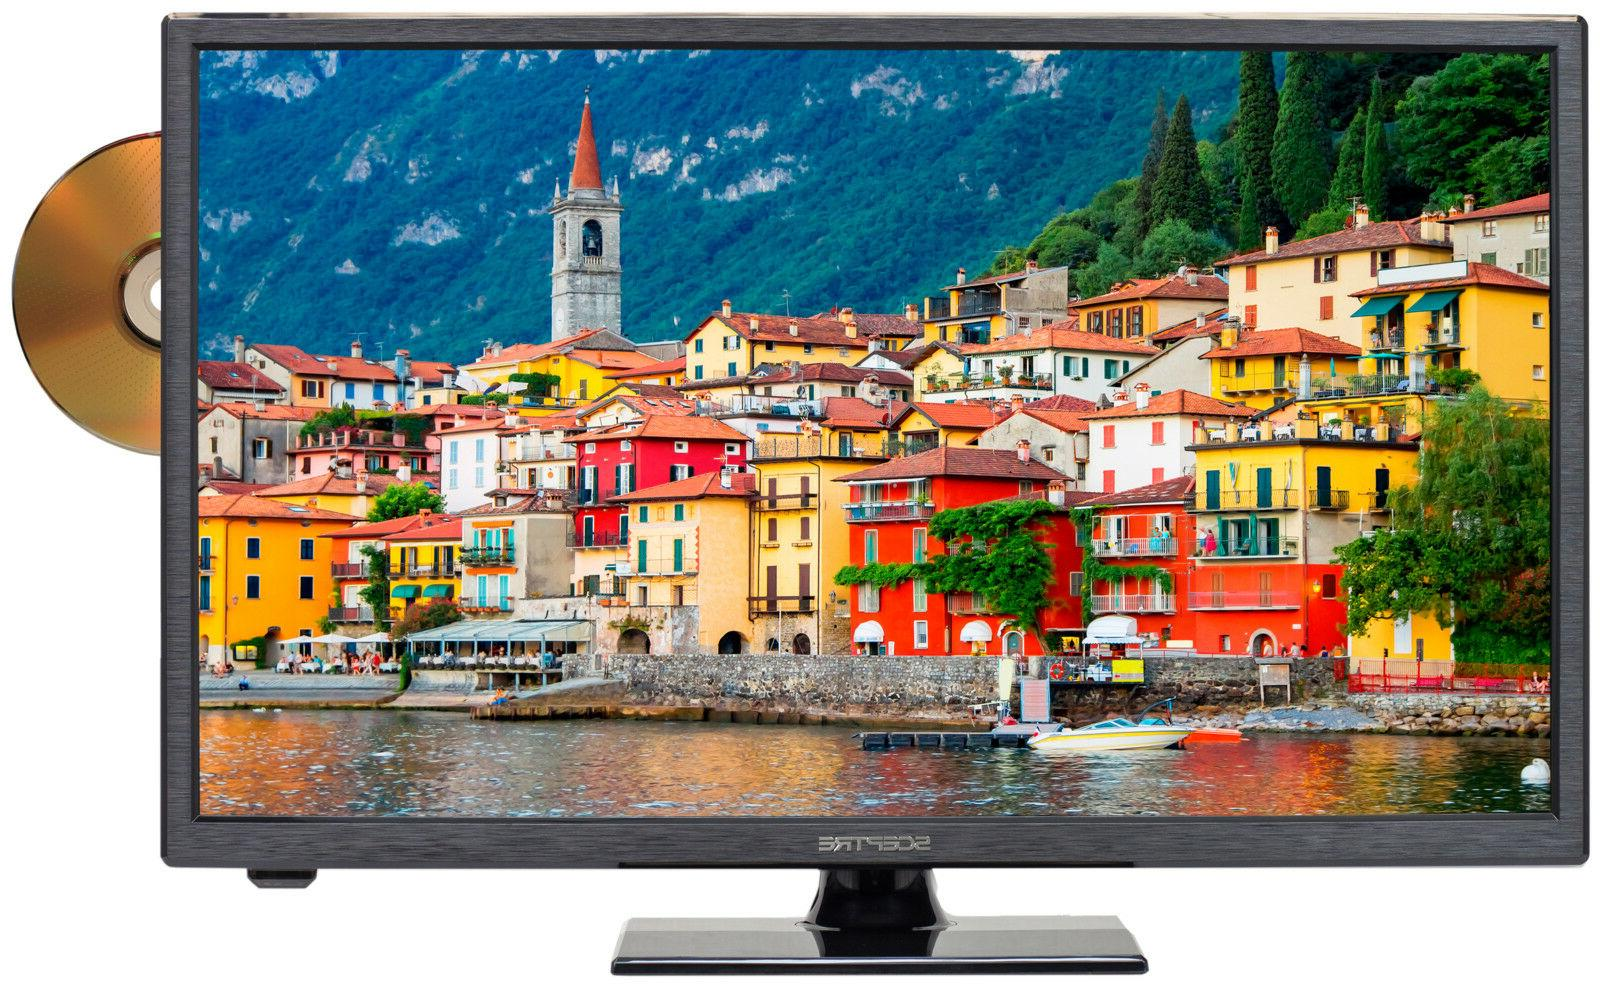 Sceptre Class LED with Built-in DVD